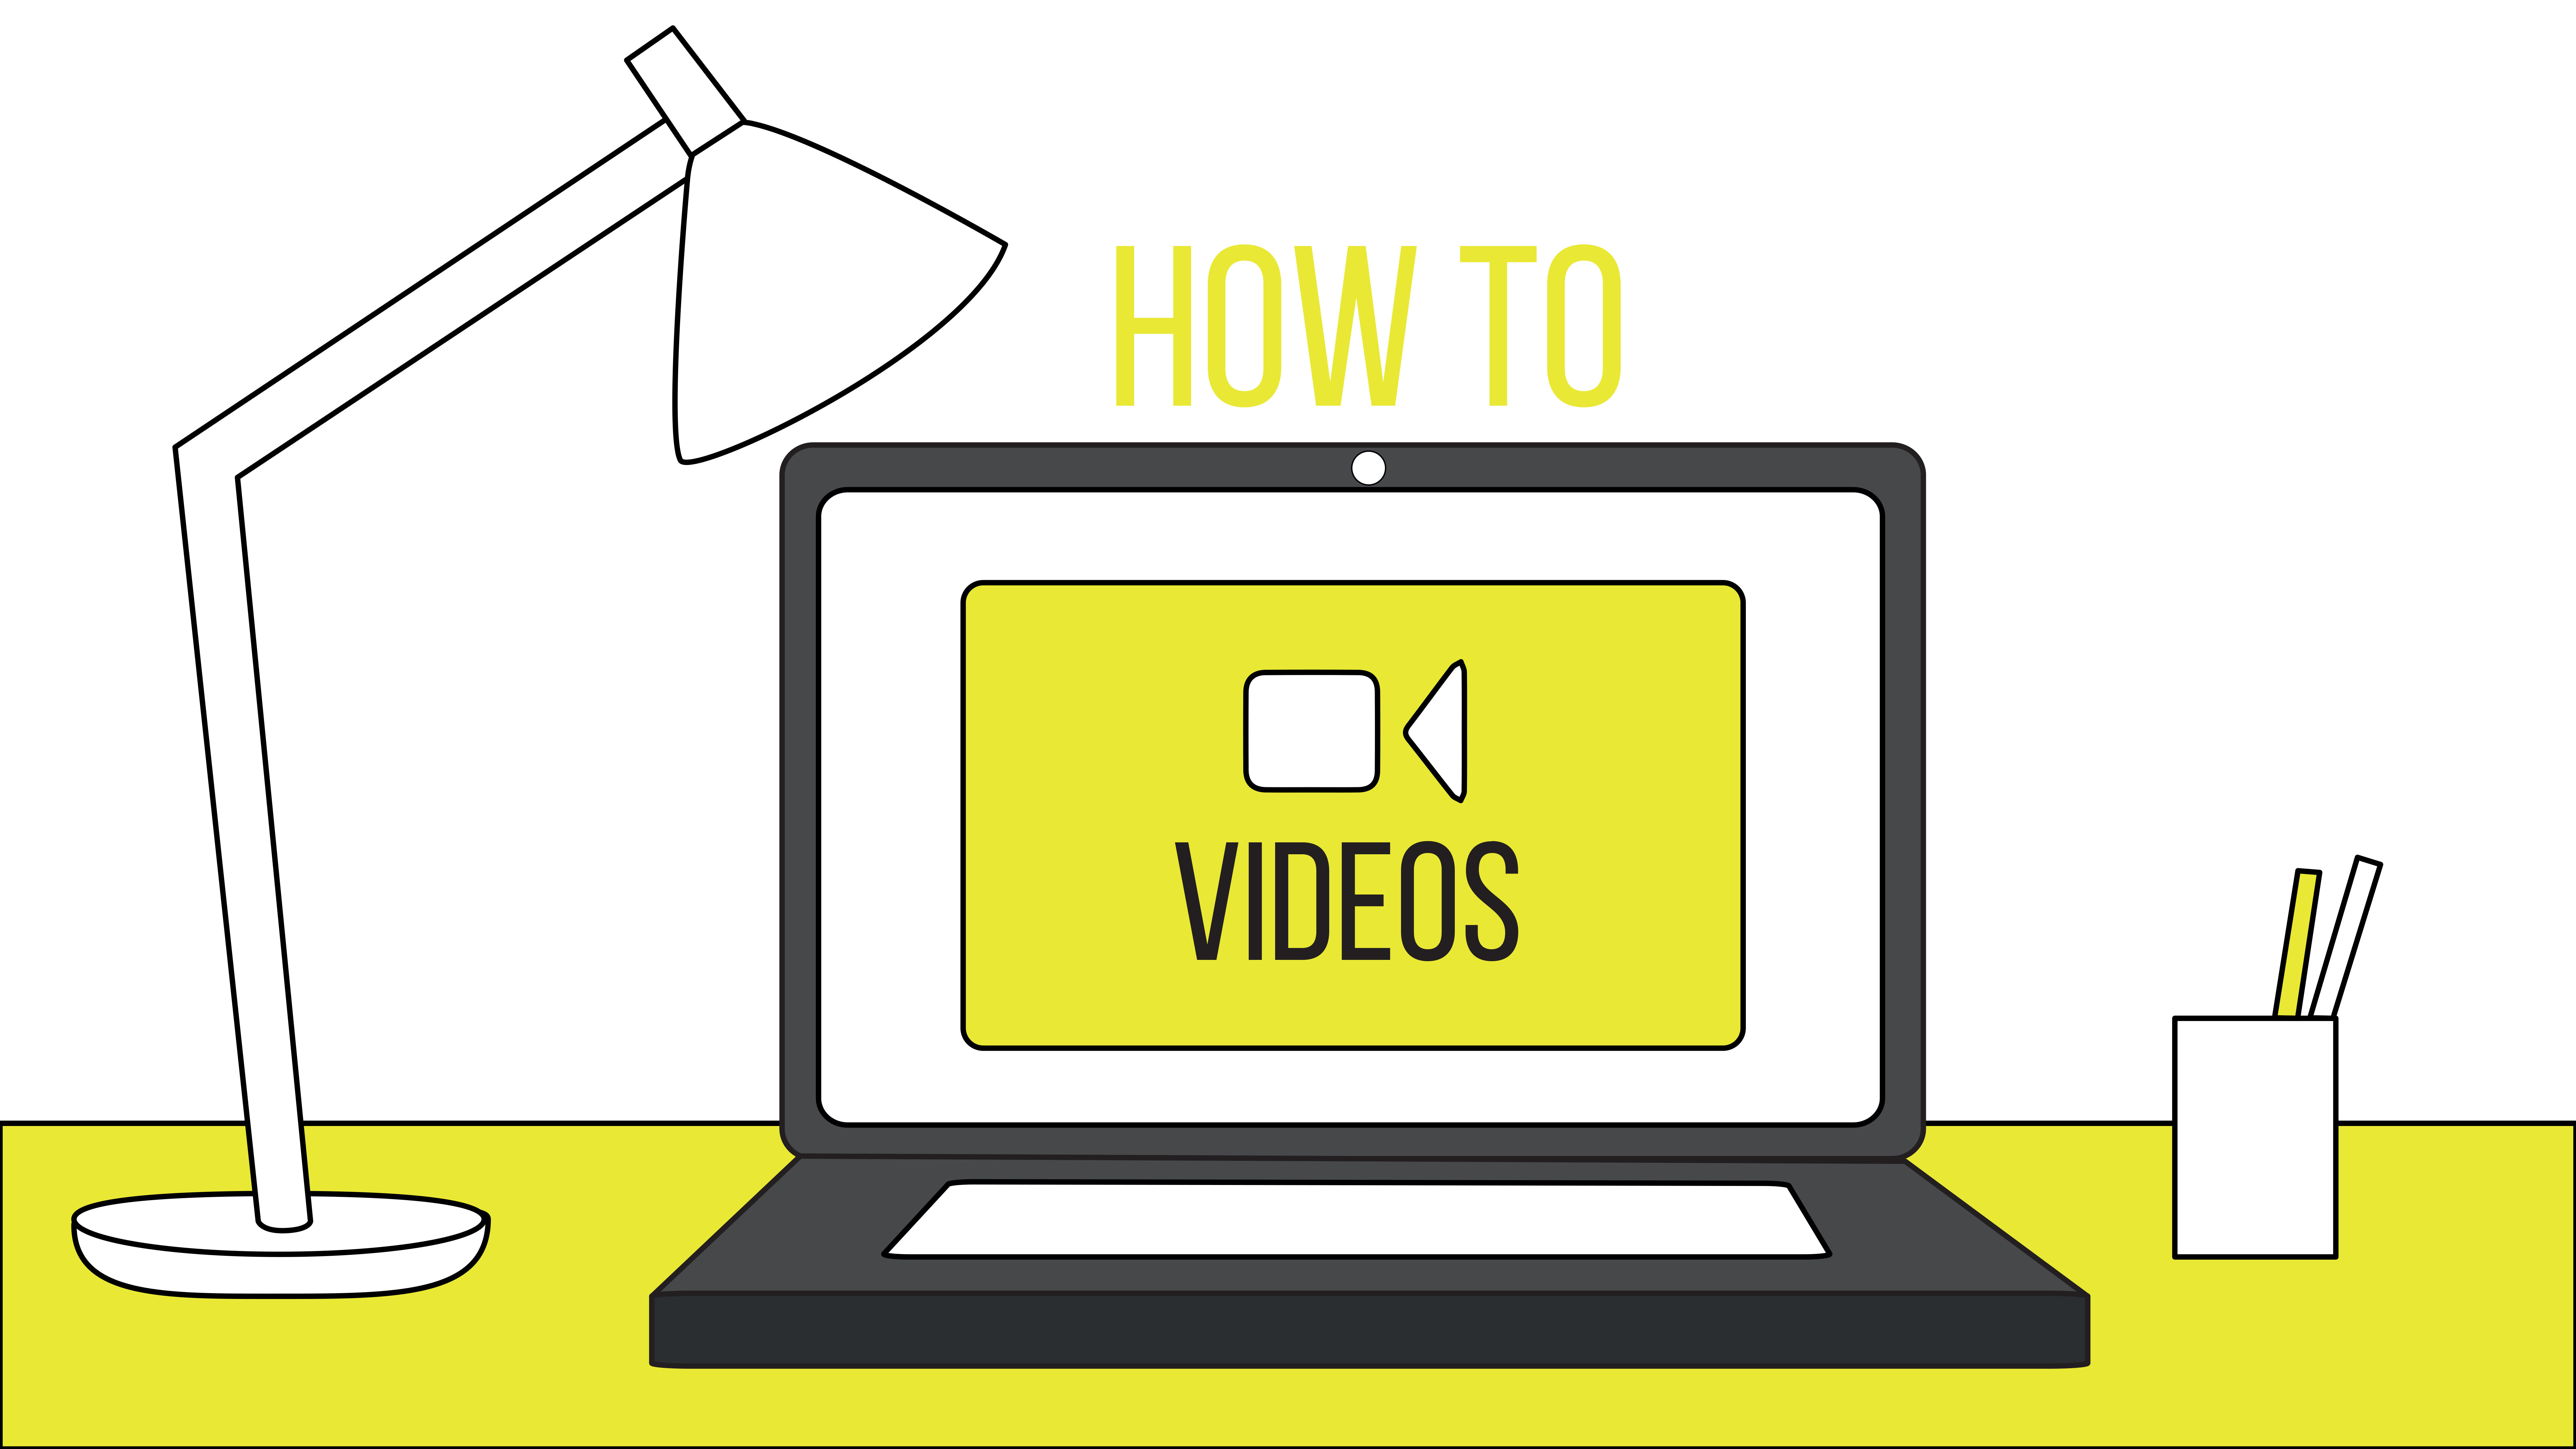 how-to-videos.jpg